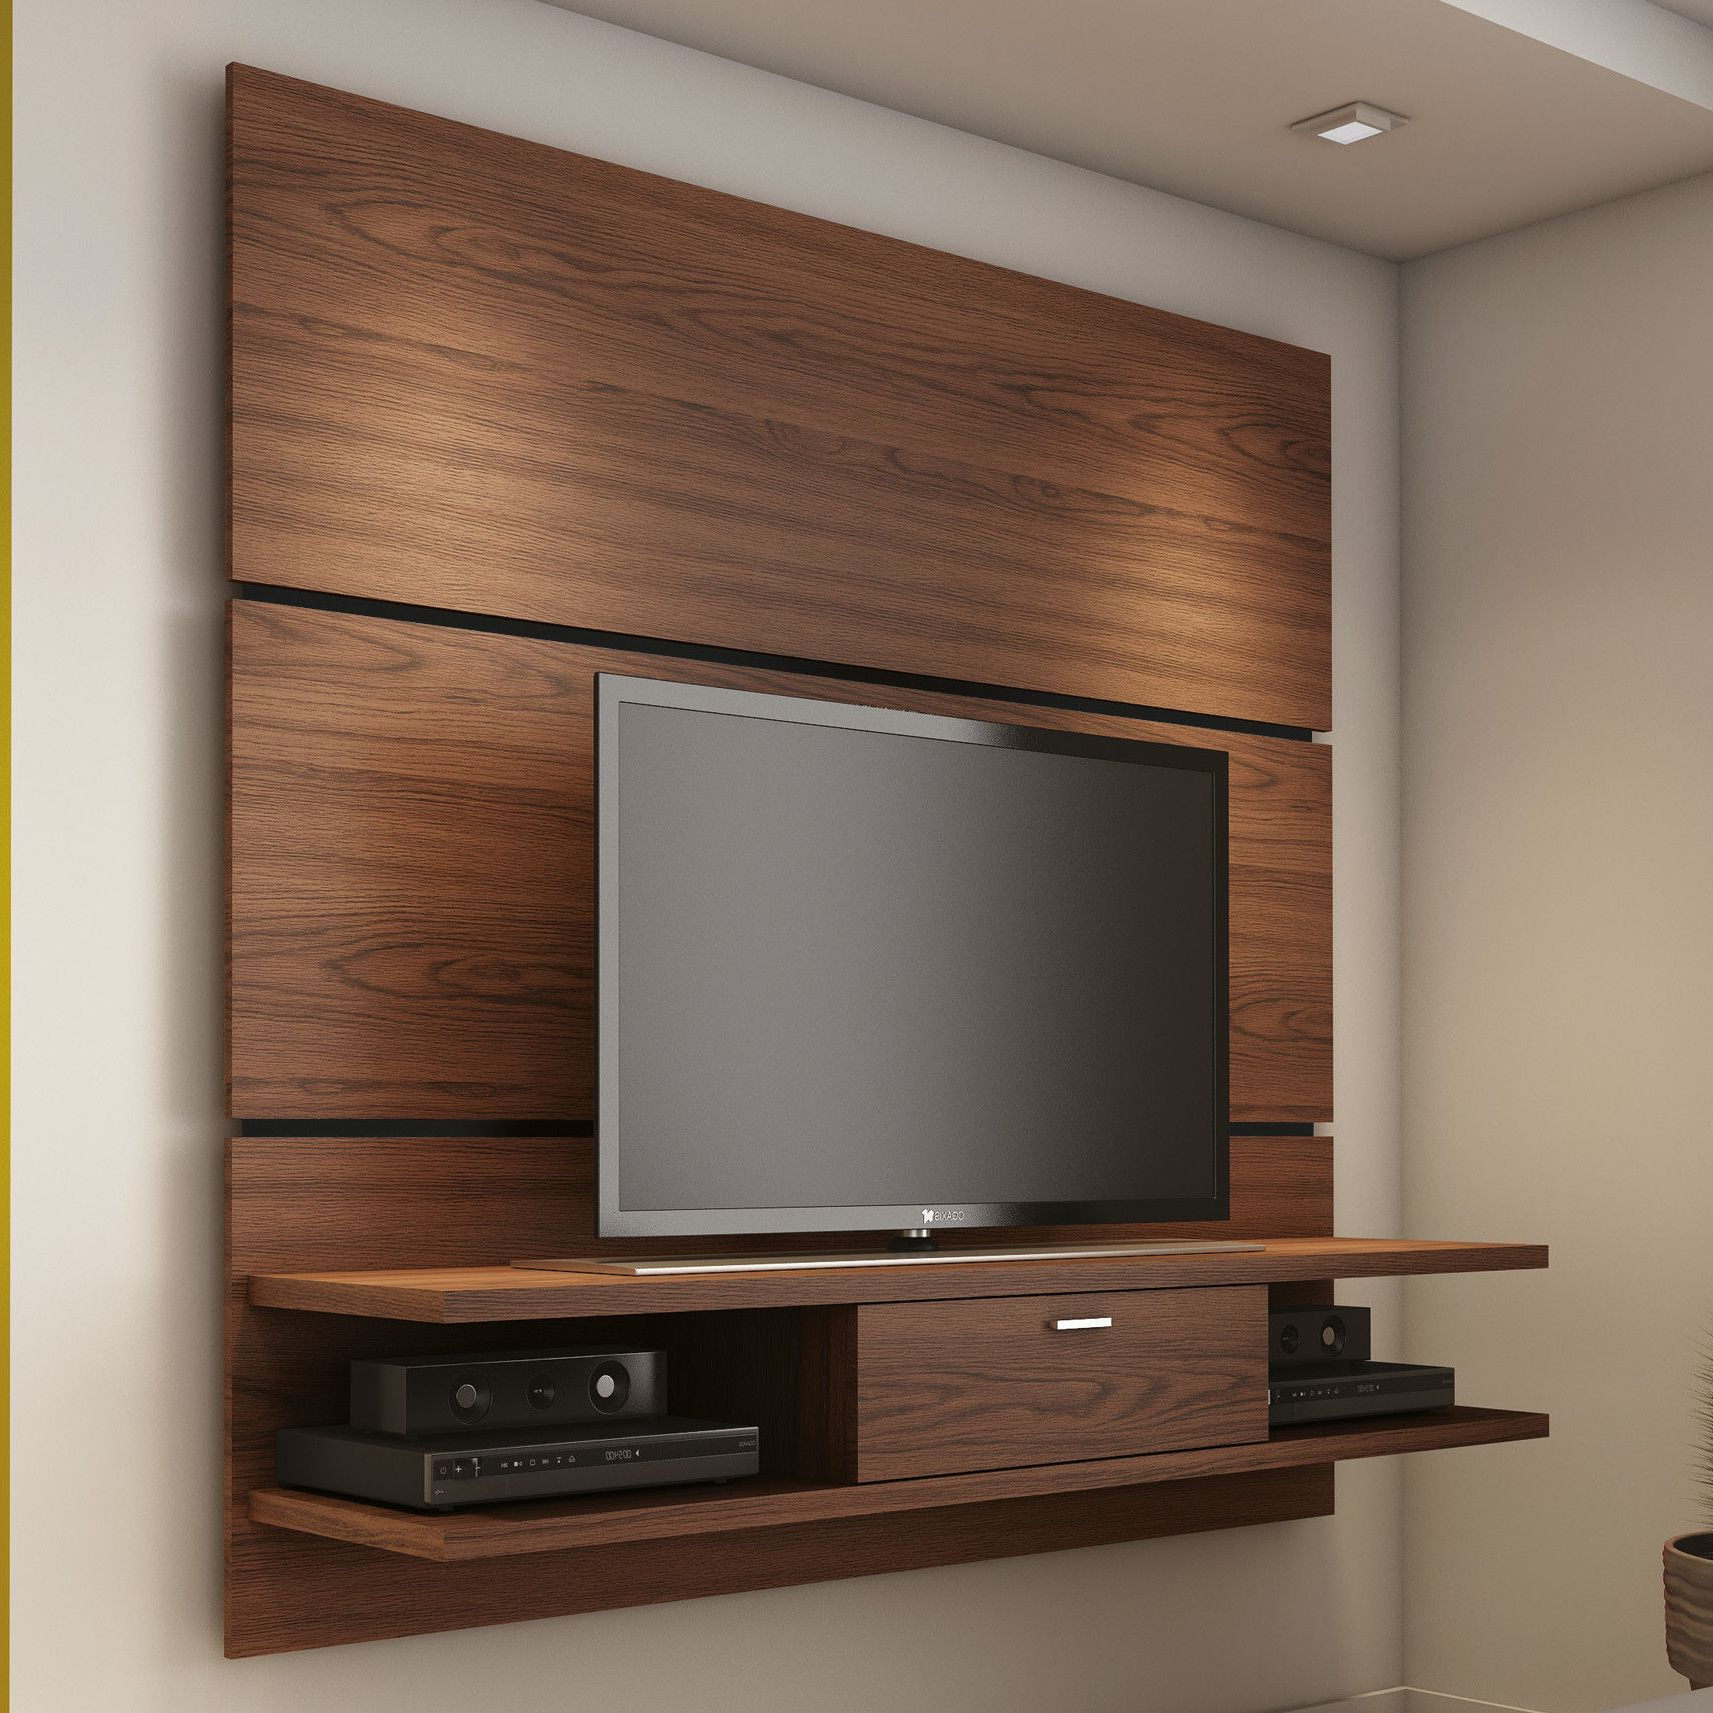 Famous Small Bedroom Tv Unit Wooden Wall Mounted Tv Stand For Bedroom In Within Tv Stands For Small Rooms (View 4 of 20)